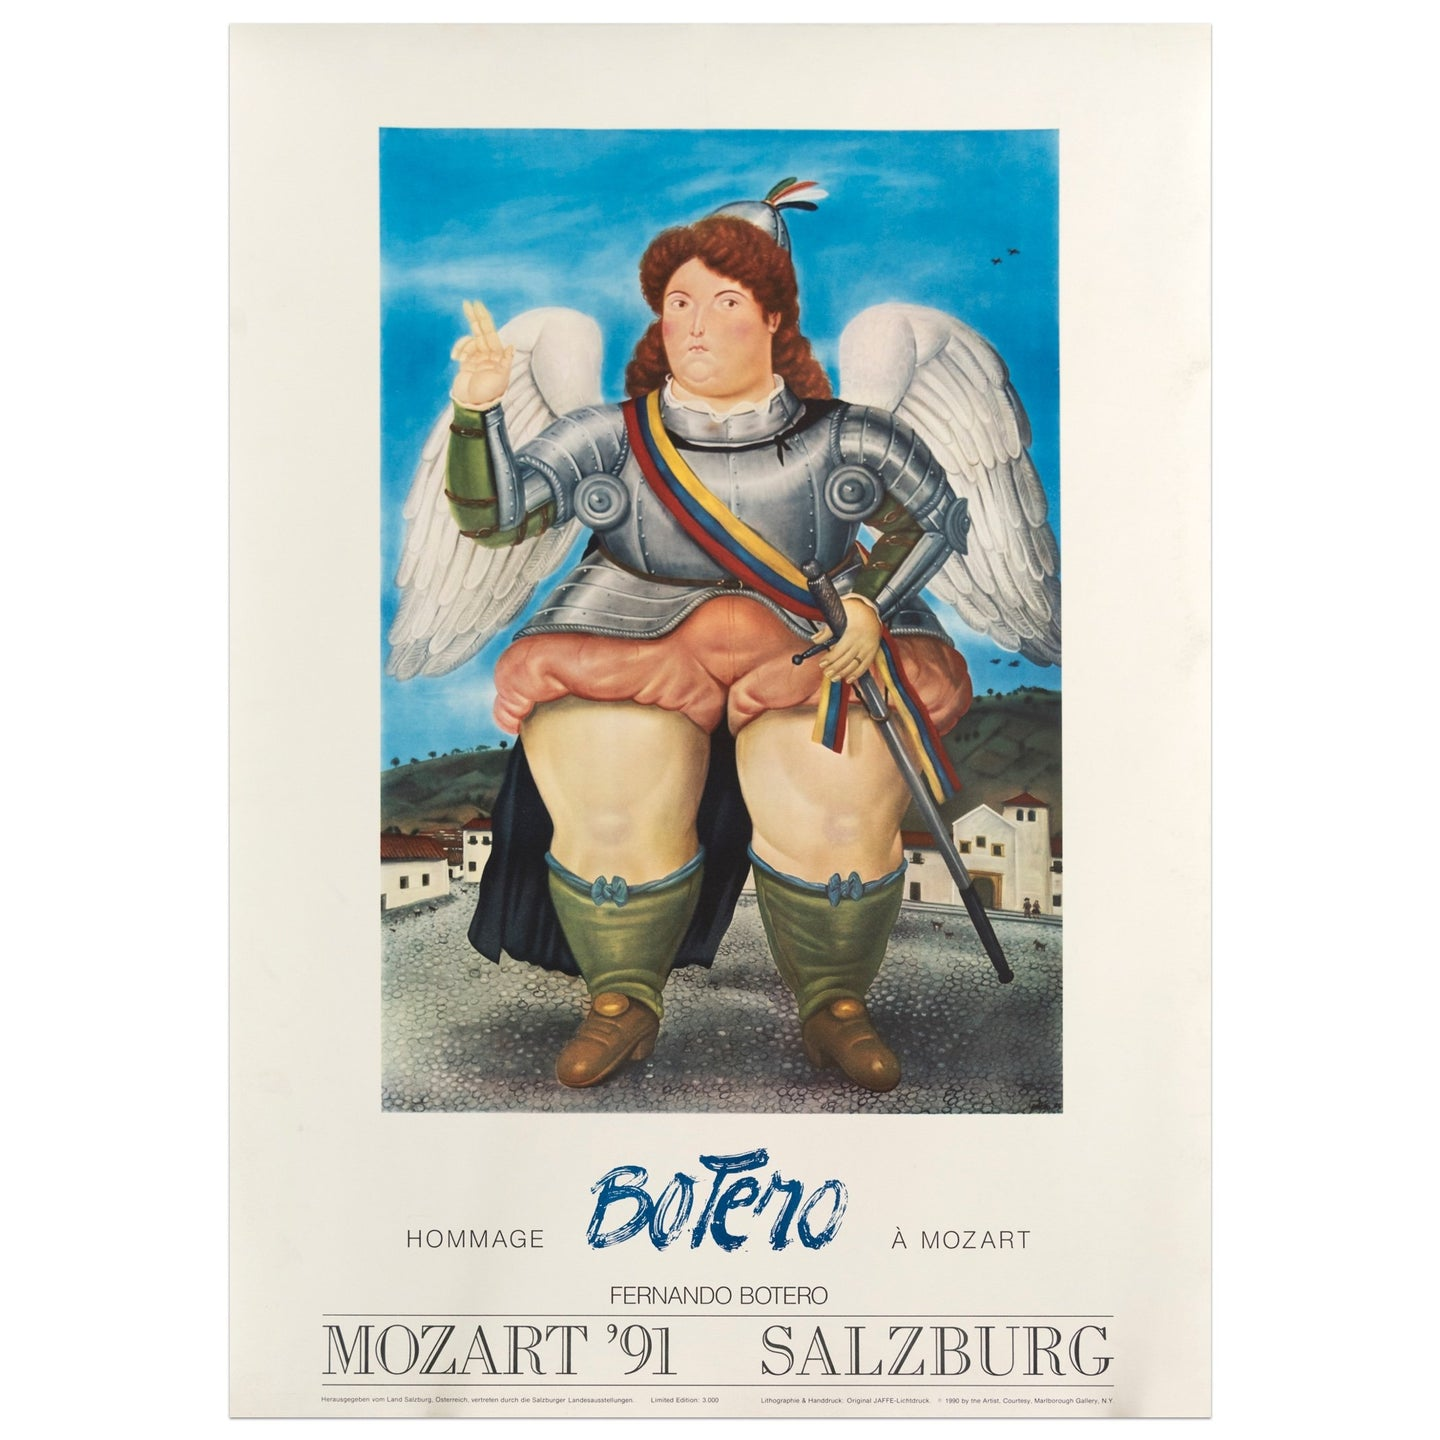 1991 Fernando Botero poster for a hommage to Mozart; featuring a Colombian woman dressed in armor, wings, and holding a sword outdoors